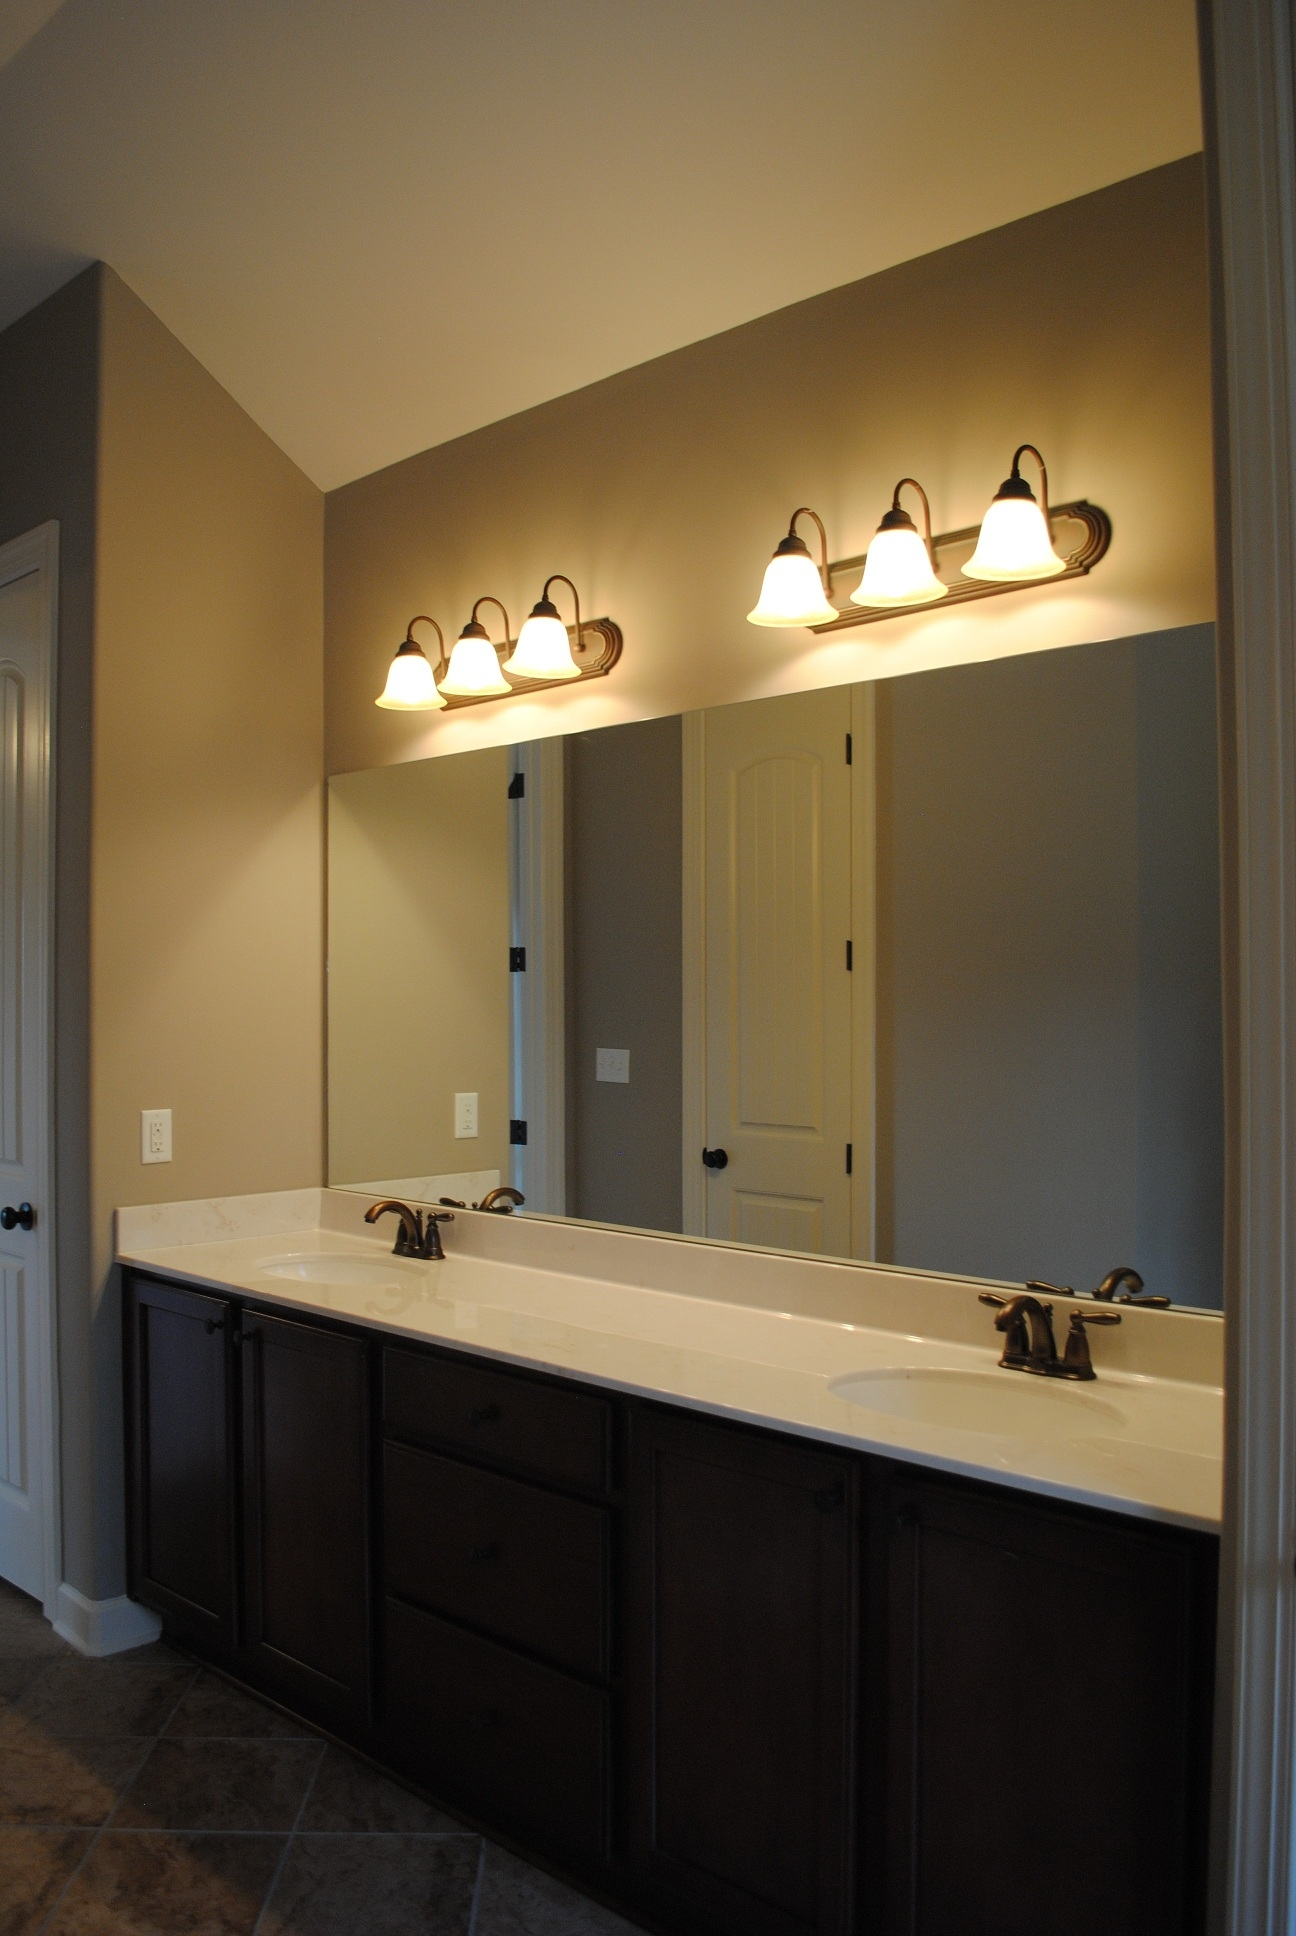 Permalink to Bathroom Mirror And Light Ideas